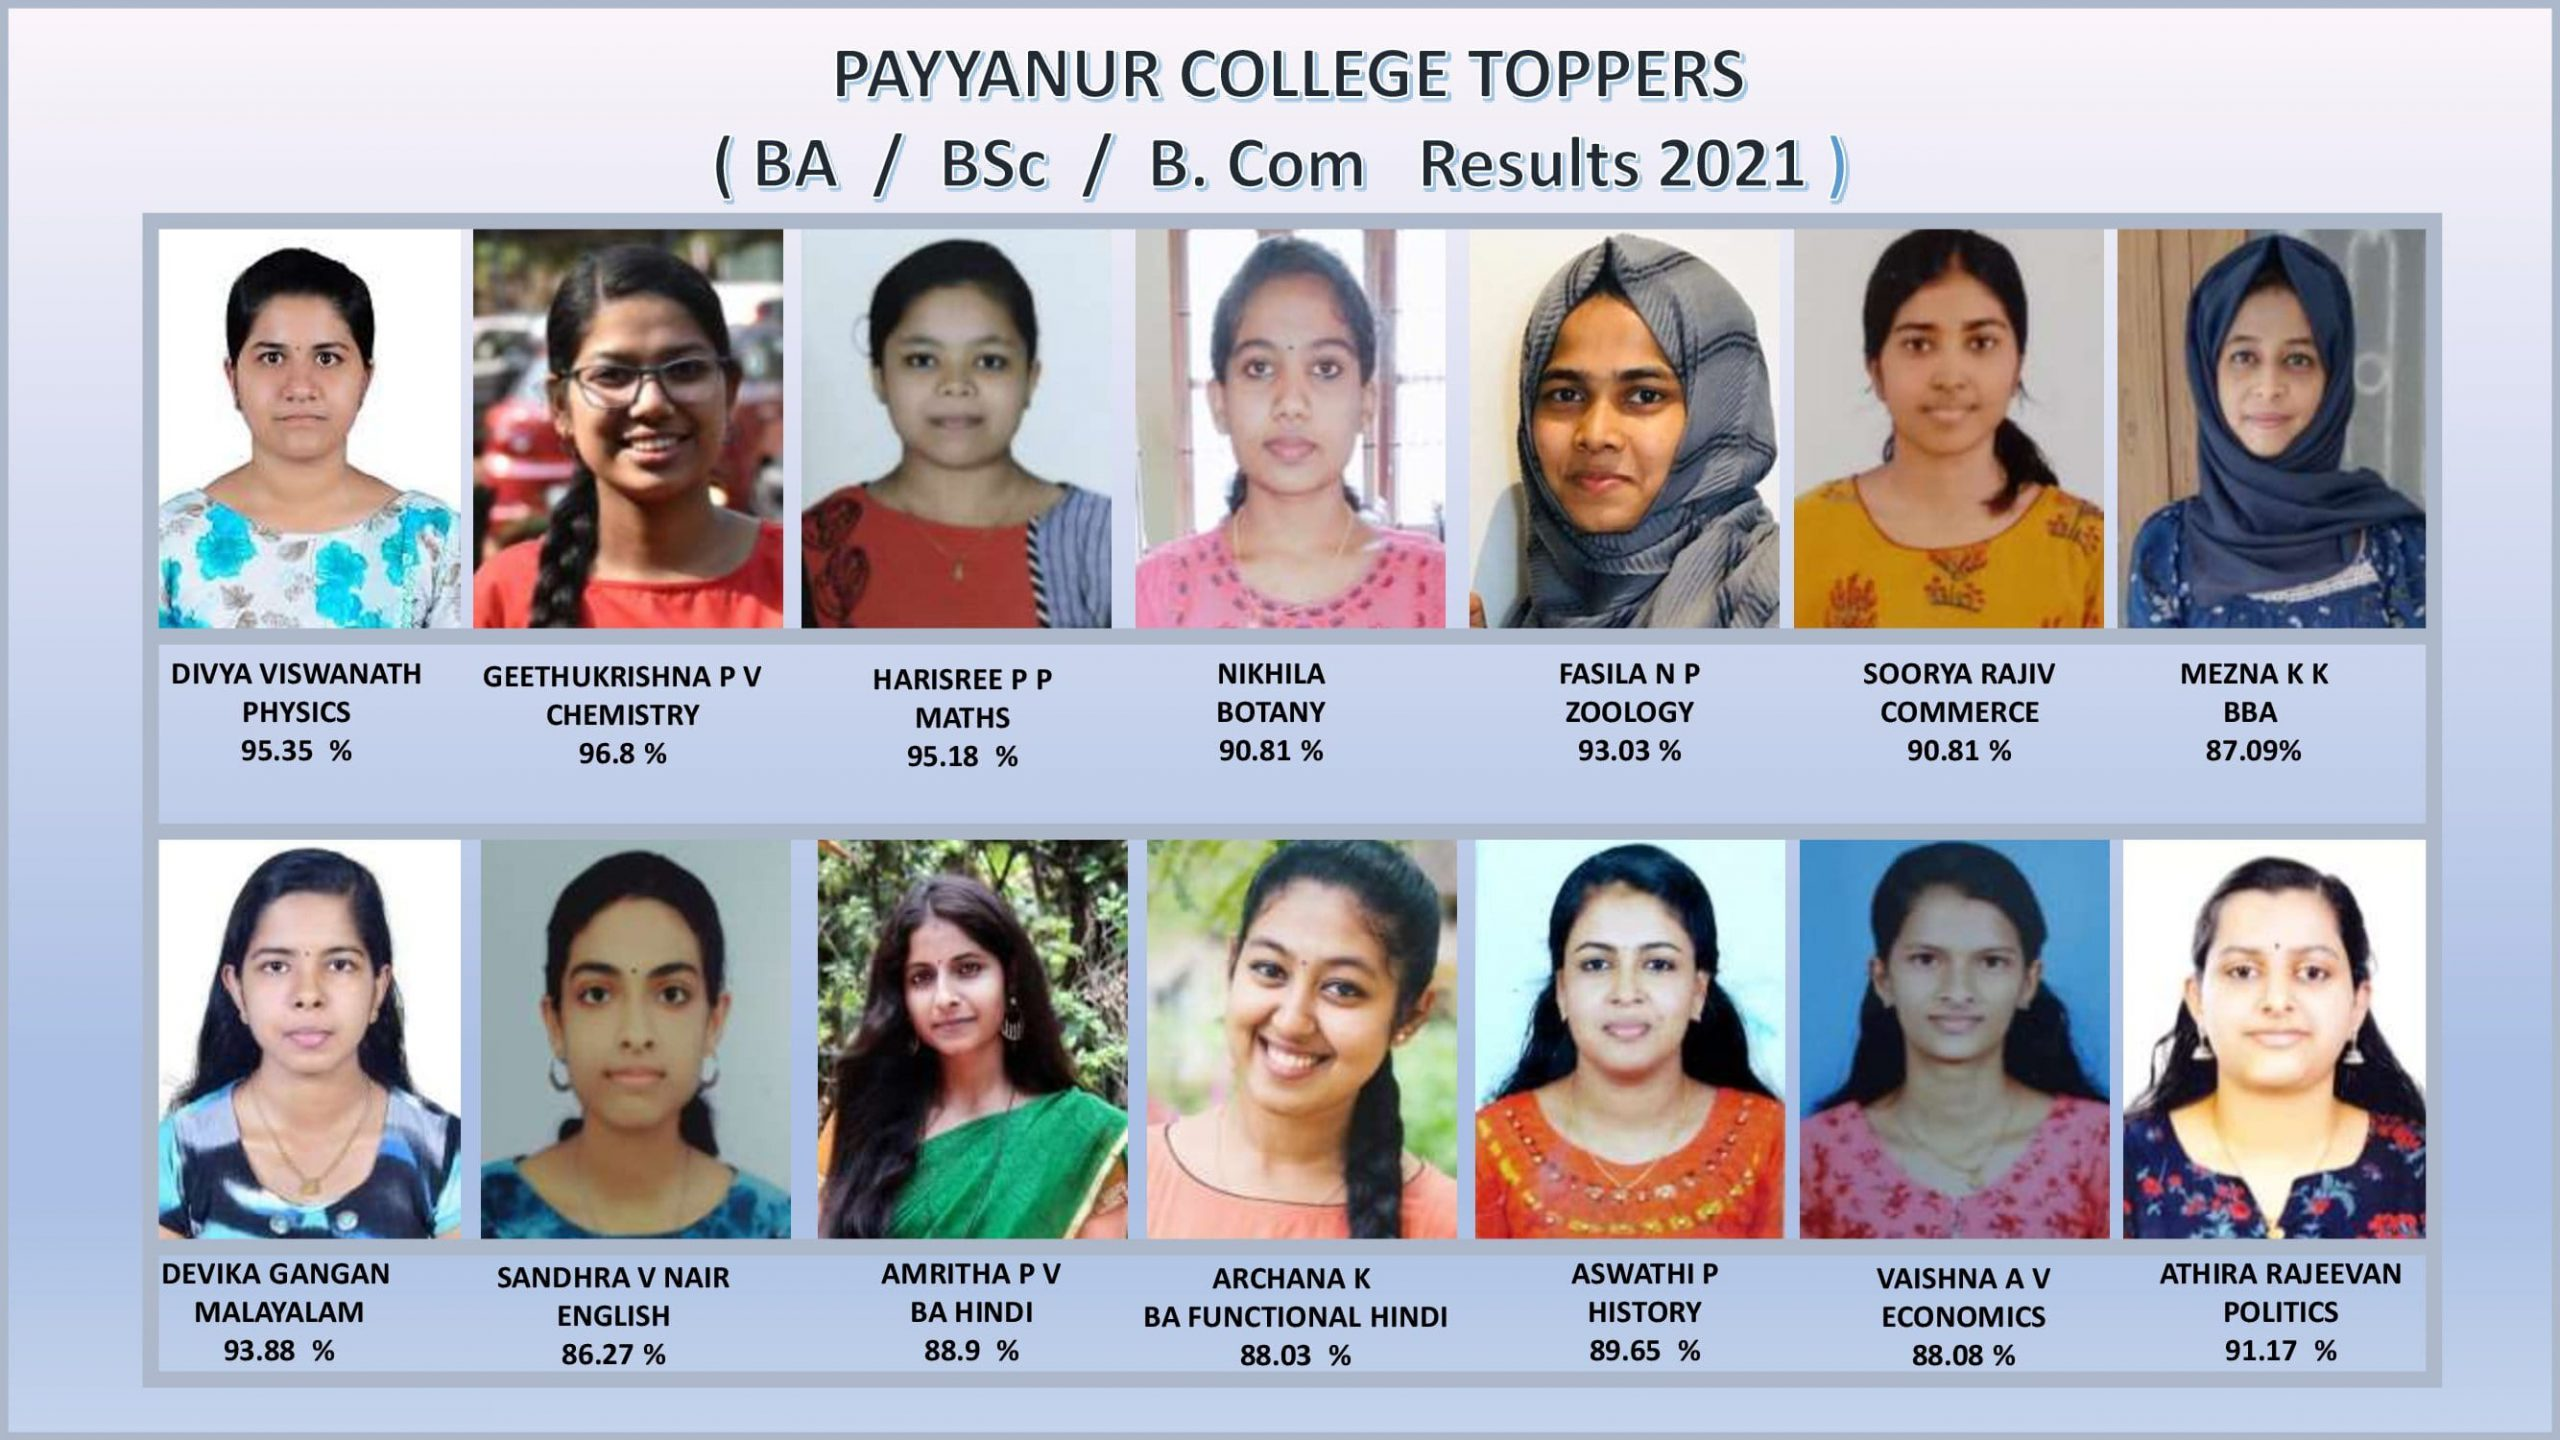 B. A/ B. Sc / B Com Results 2021- PAYYANUR COLLEGE TOPPERS